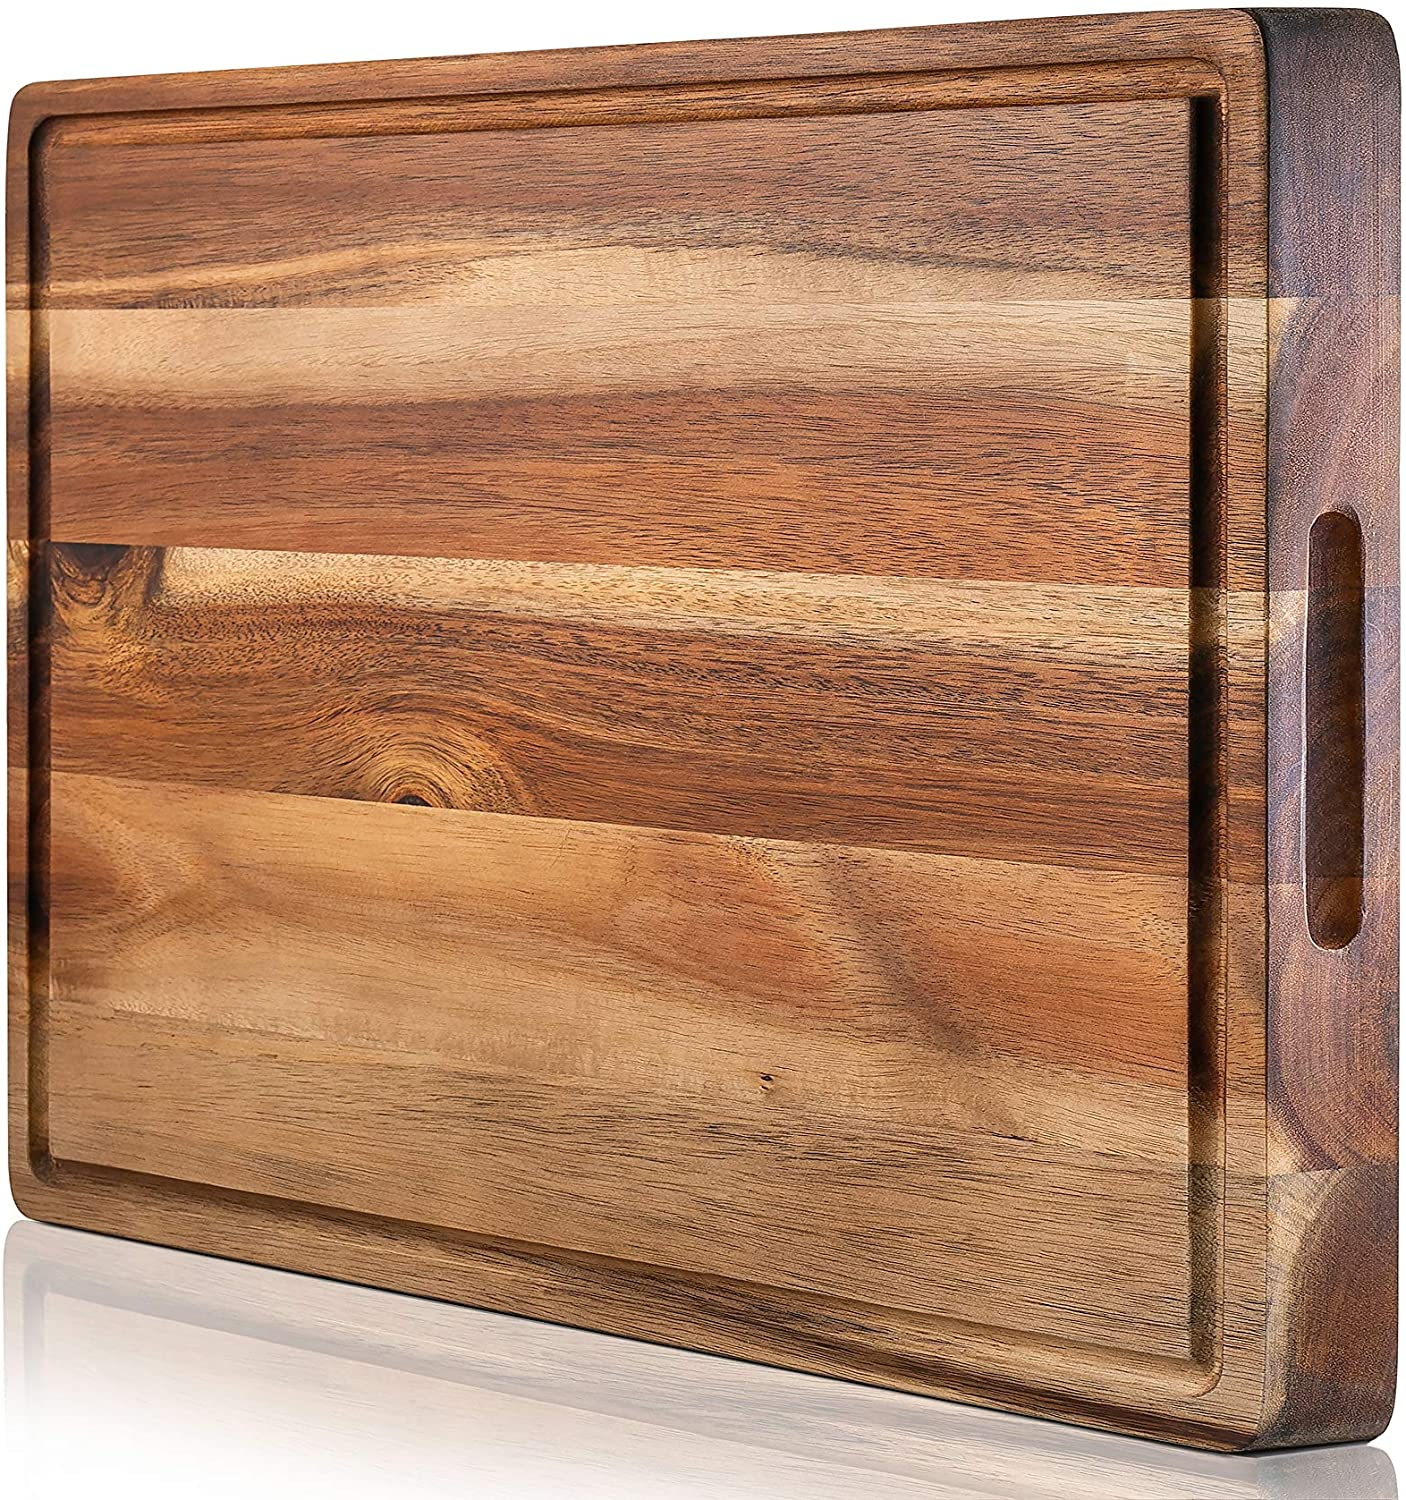 HomeProShops 1-14x12x19 Reversible Solid Mixed Hardwoods END-GRAIN Wood Butcher Block Cutting Board with FREE Mineral Oil included